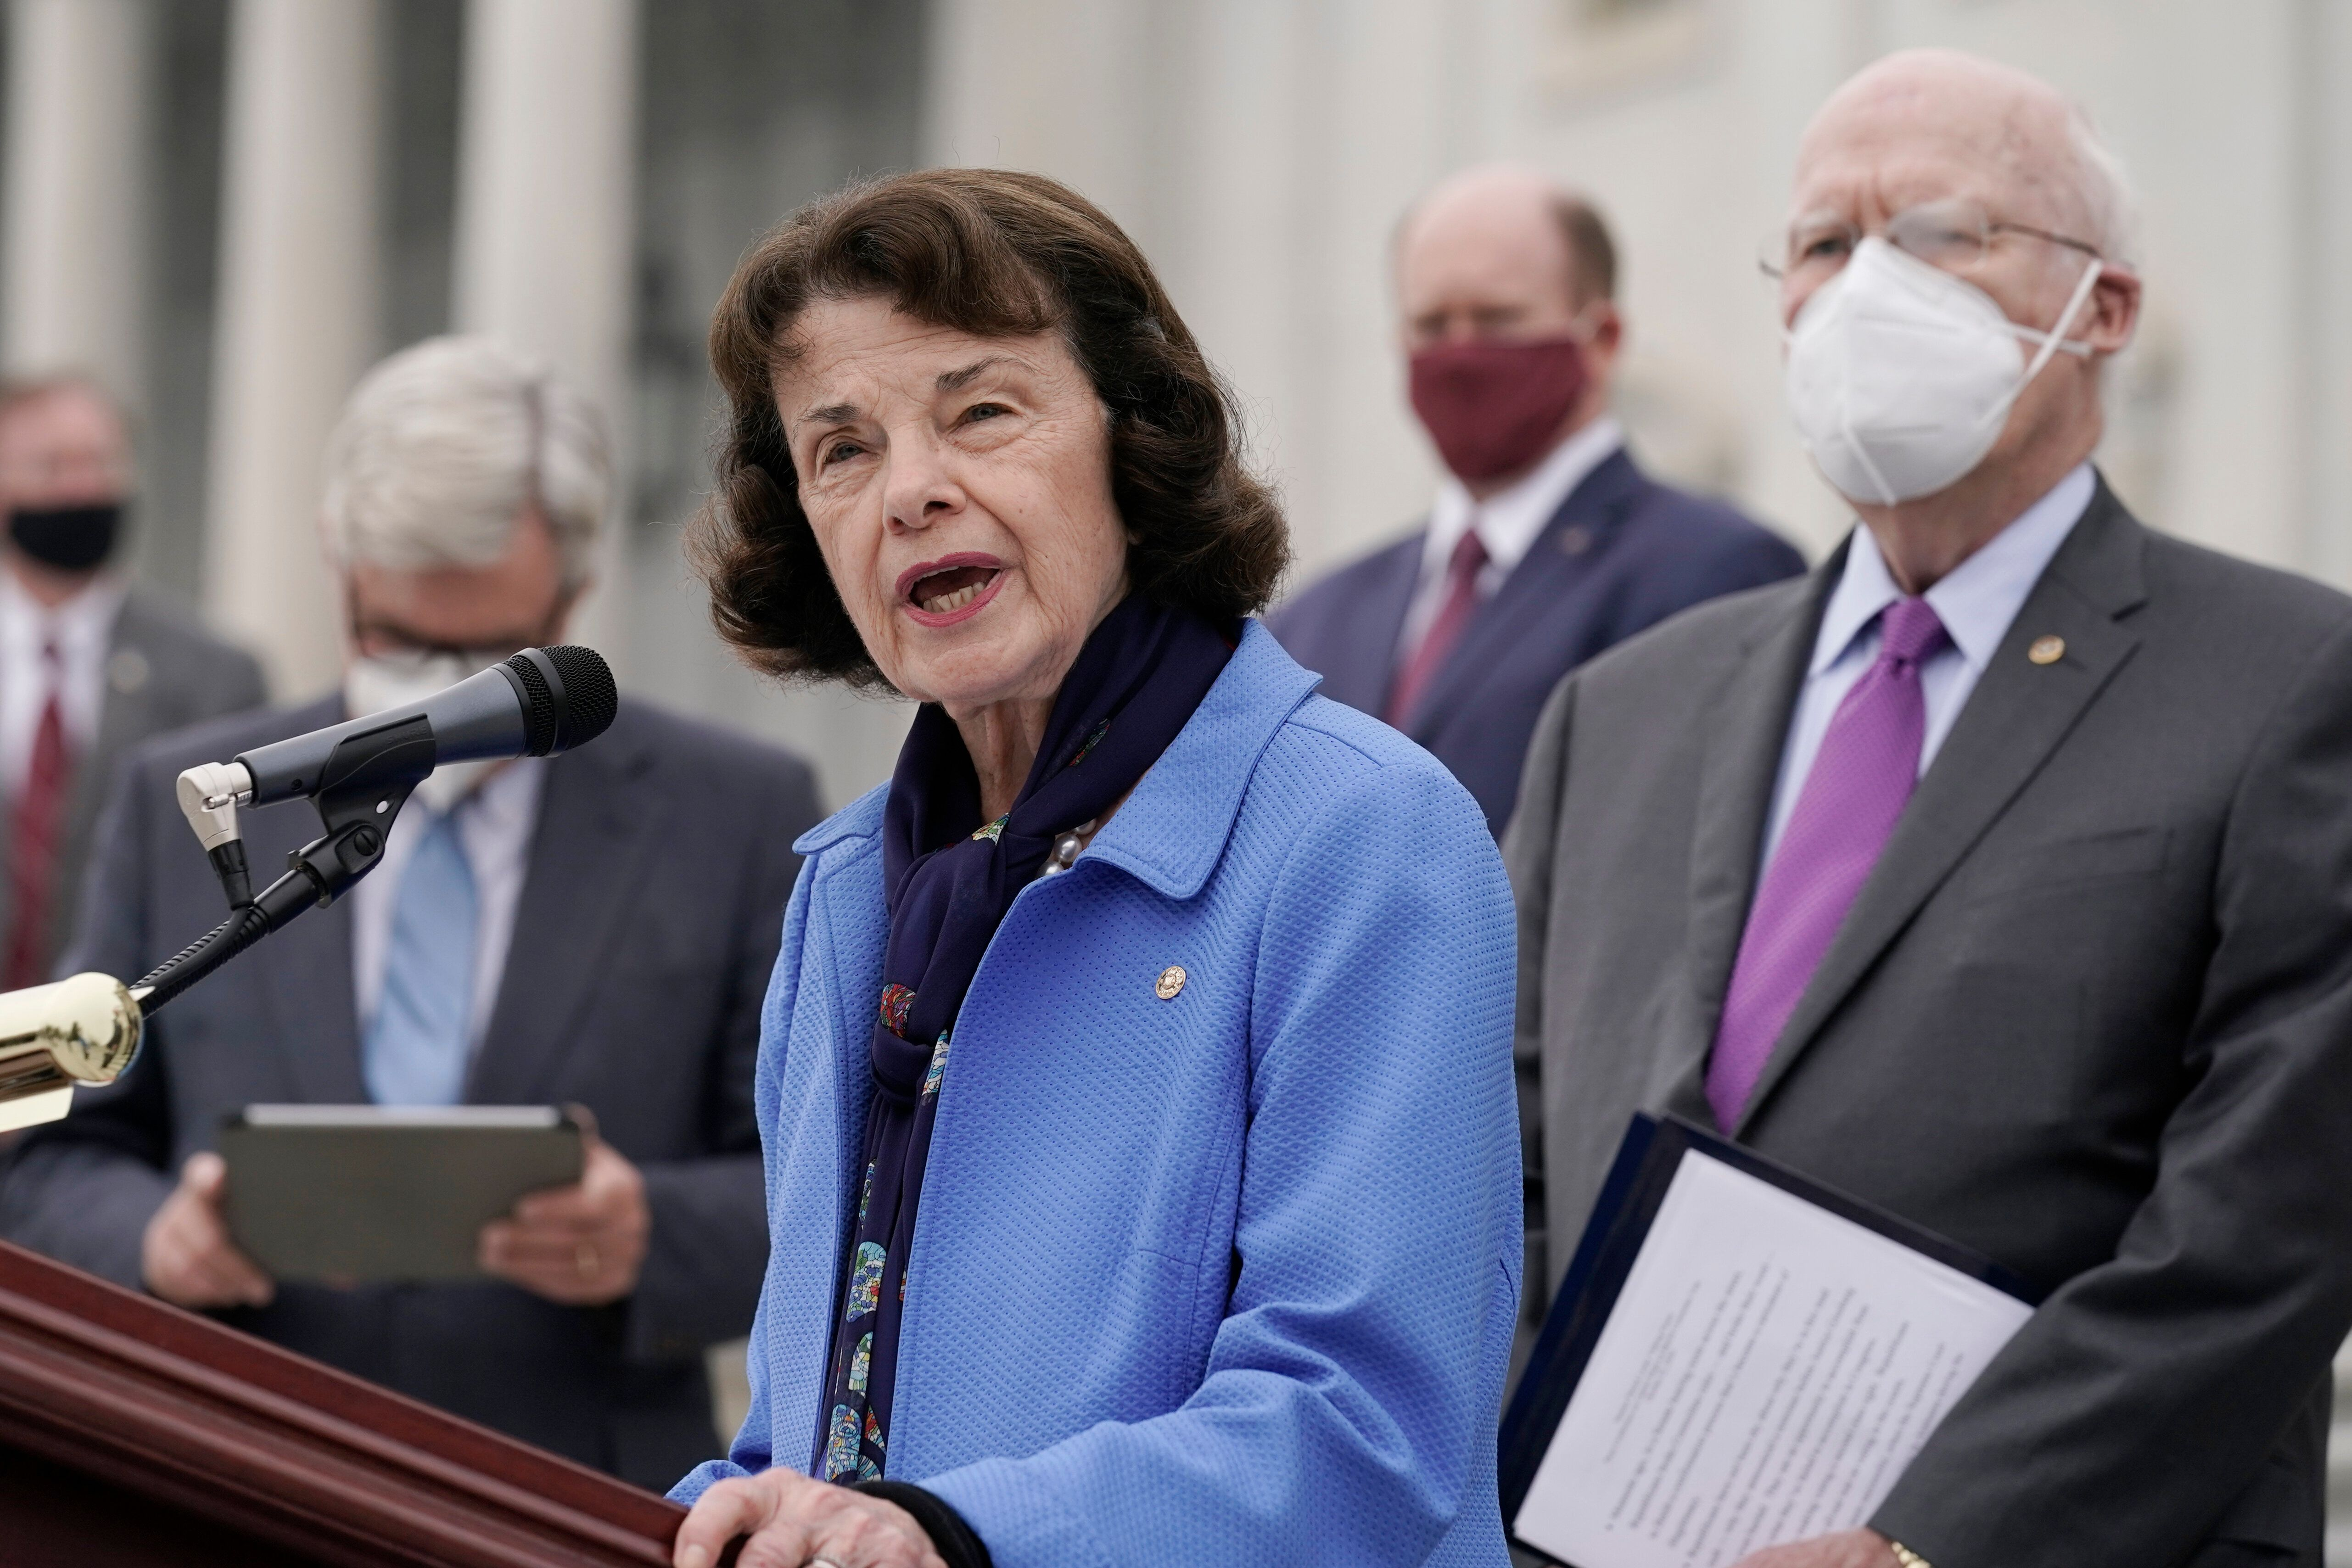 Senate Judiciary Committee ranking member Sen. Dianne Feinstein (D-Calif.) speaks during an Oct. 22, 2020, news conference af